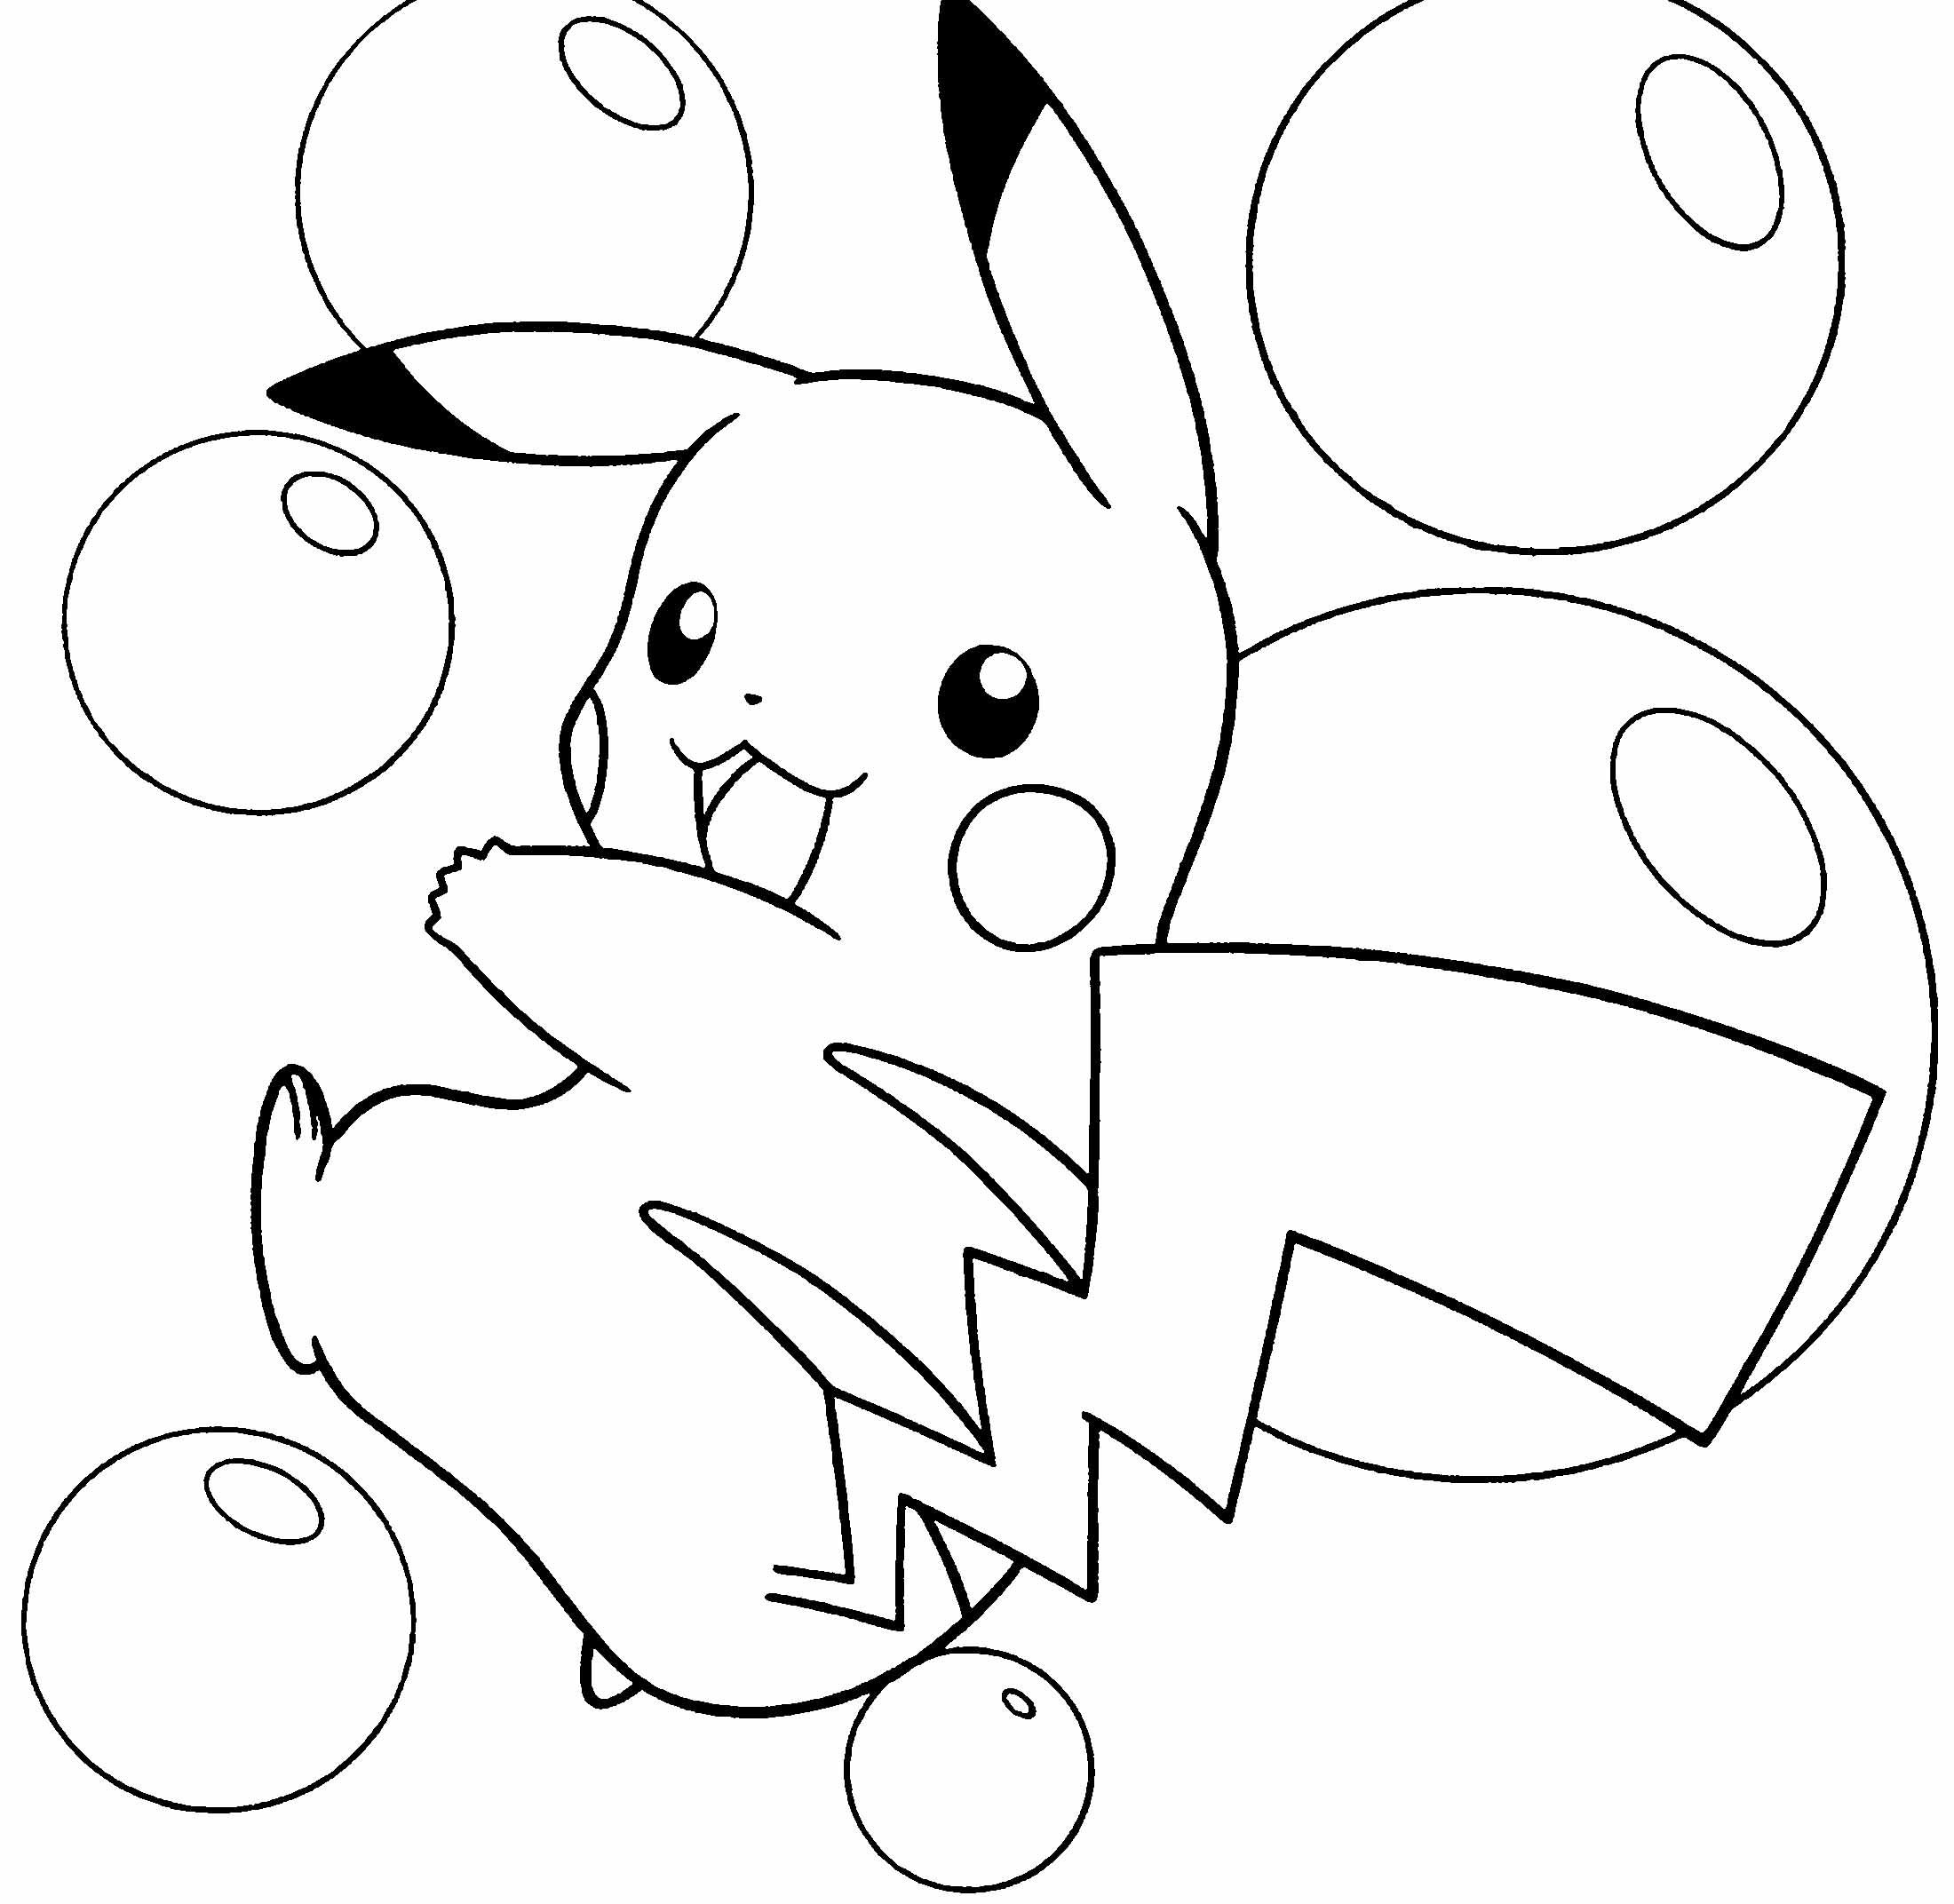 pokemon coloring pages pikachu pikachu coloring pages   Free Large Images | Coloring Book  pokemon coloring pages pikachu